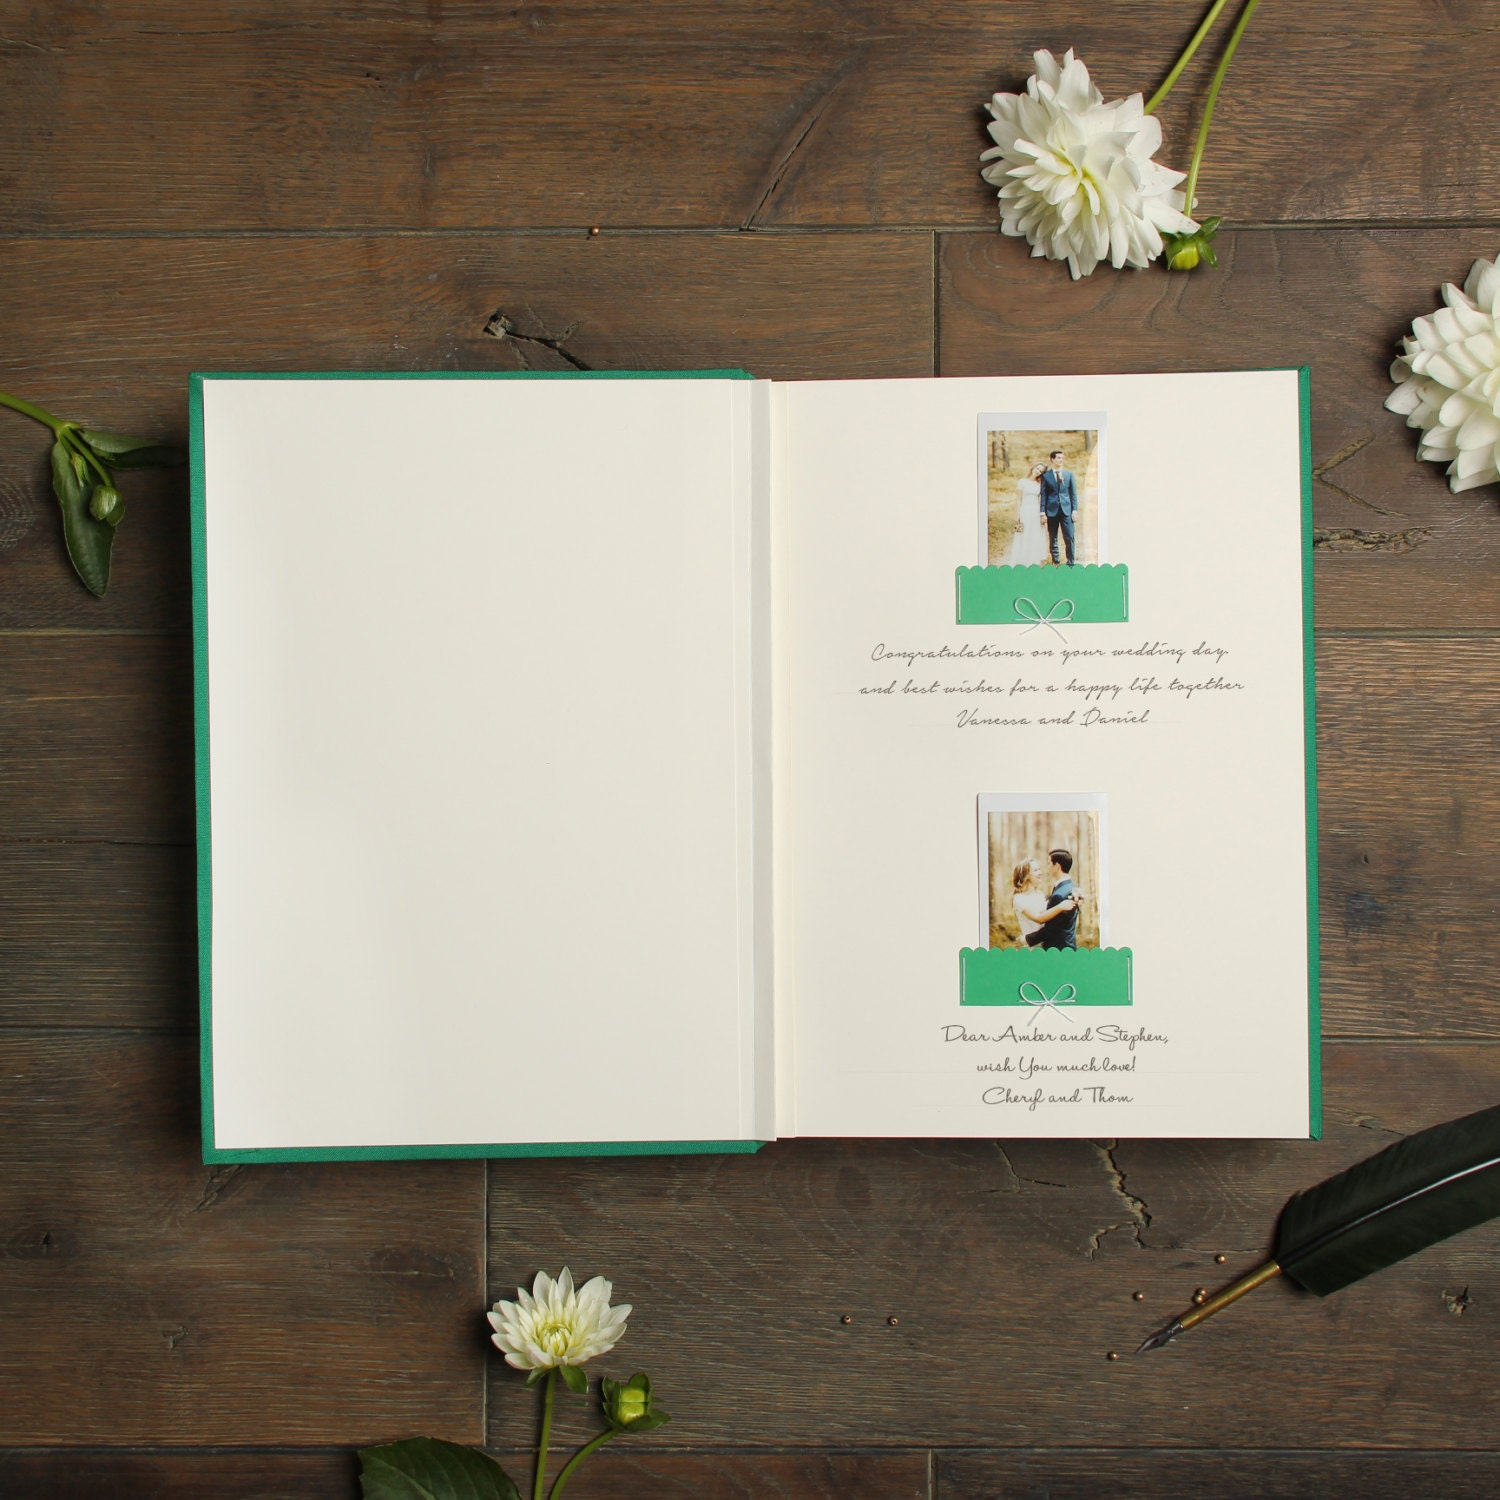 Pocket Guest Book: Instant Pocket Guestbook Shamrock Green With White